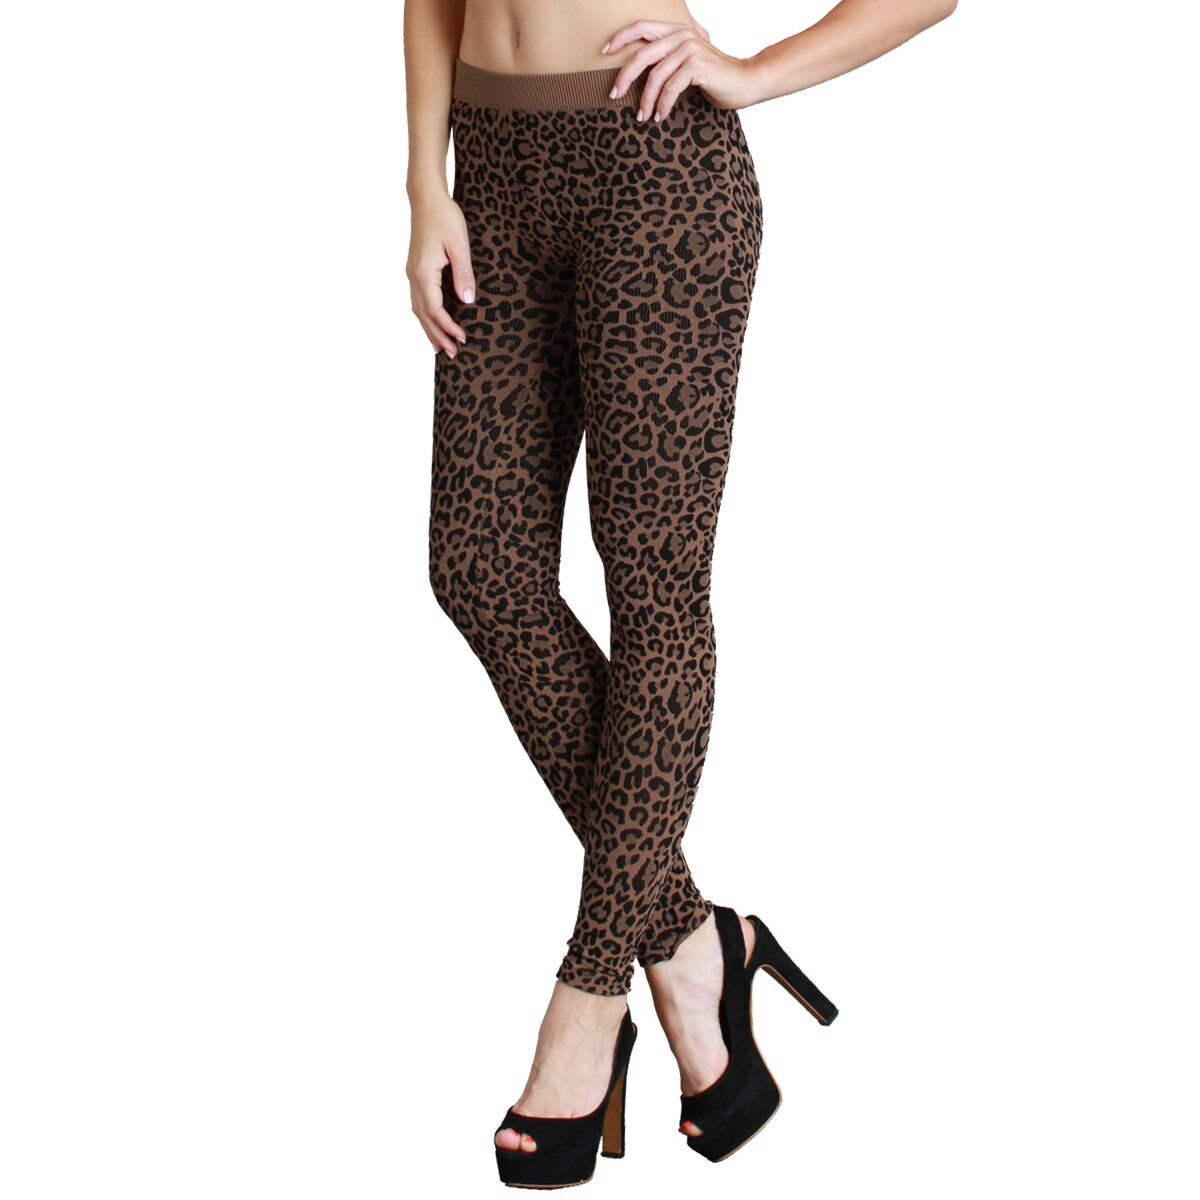 7d8113e651c7a8 Shop Nikibiki Women's Seamless Vivid Leopard Print Ankle Length Leggings -  Free Shipping On Orders Over $45 - Overstock - 9752990